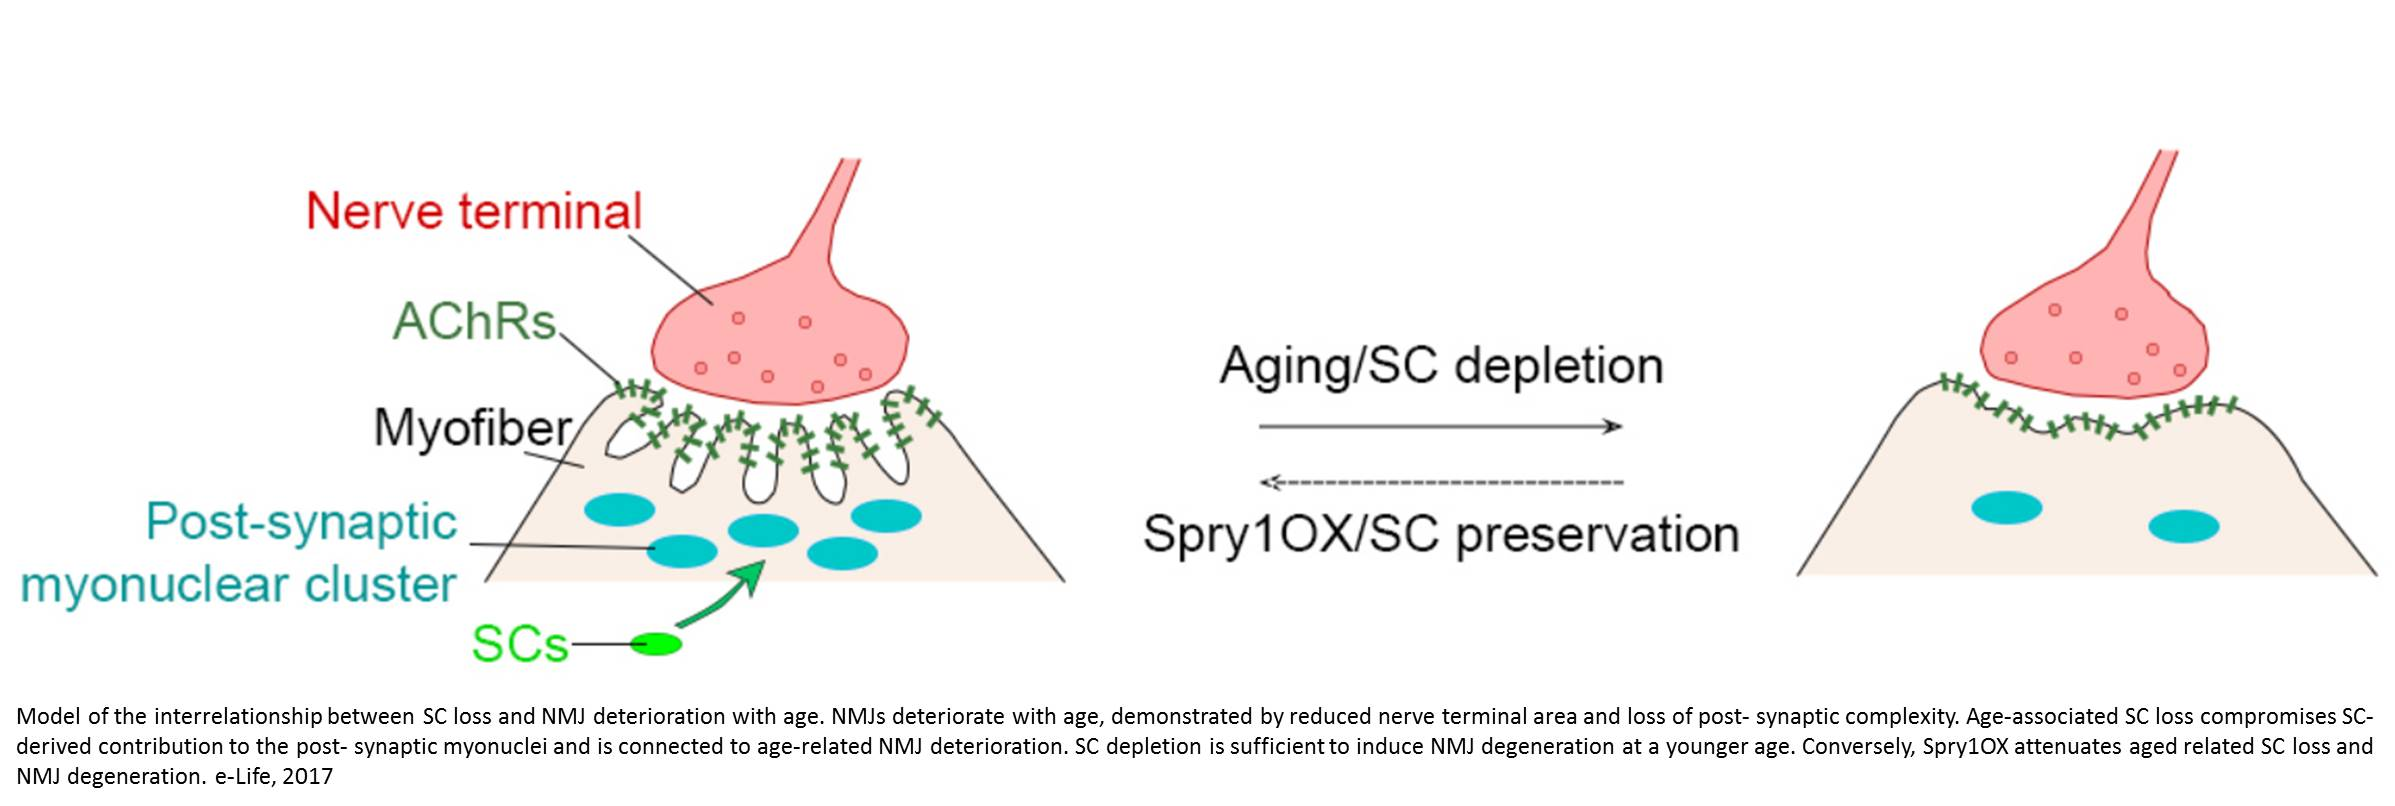 Stem cells may be the key to staying strong in old age